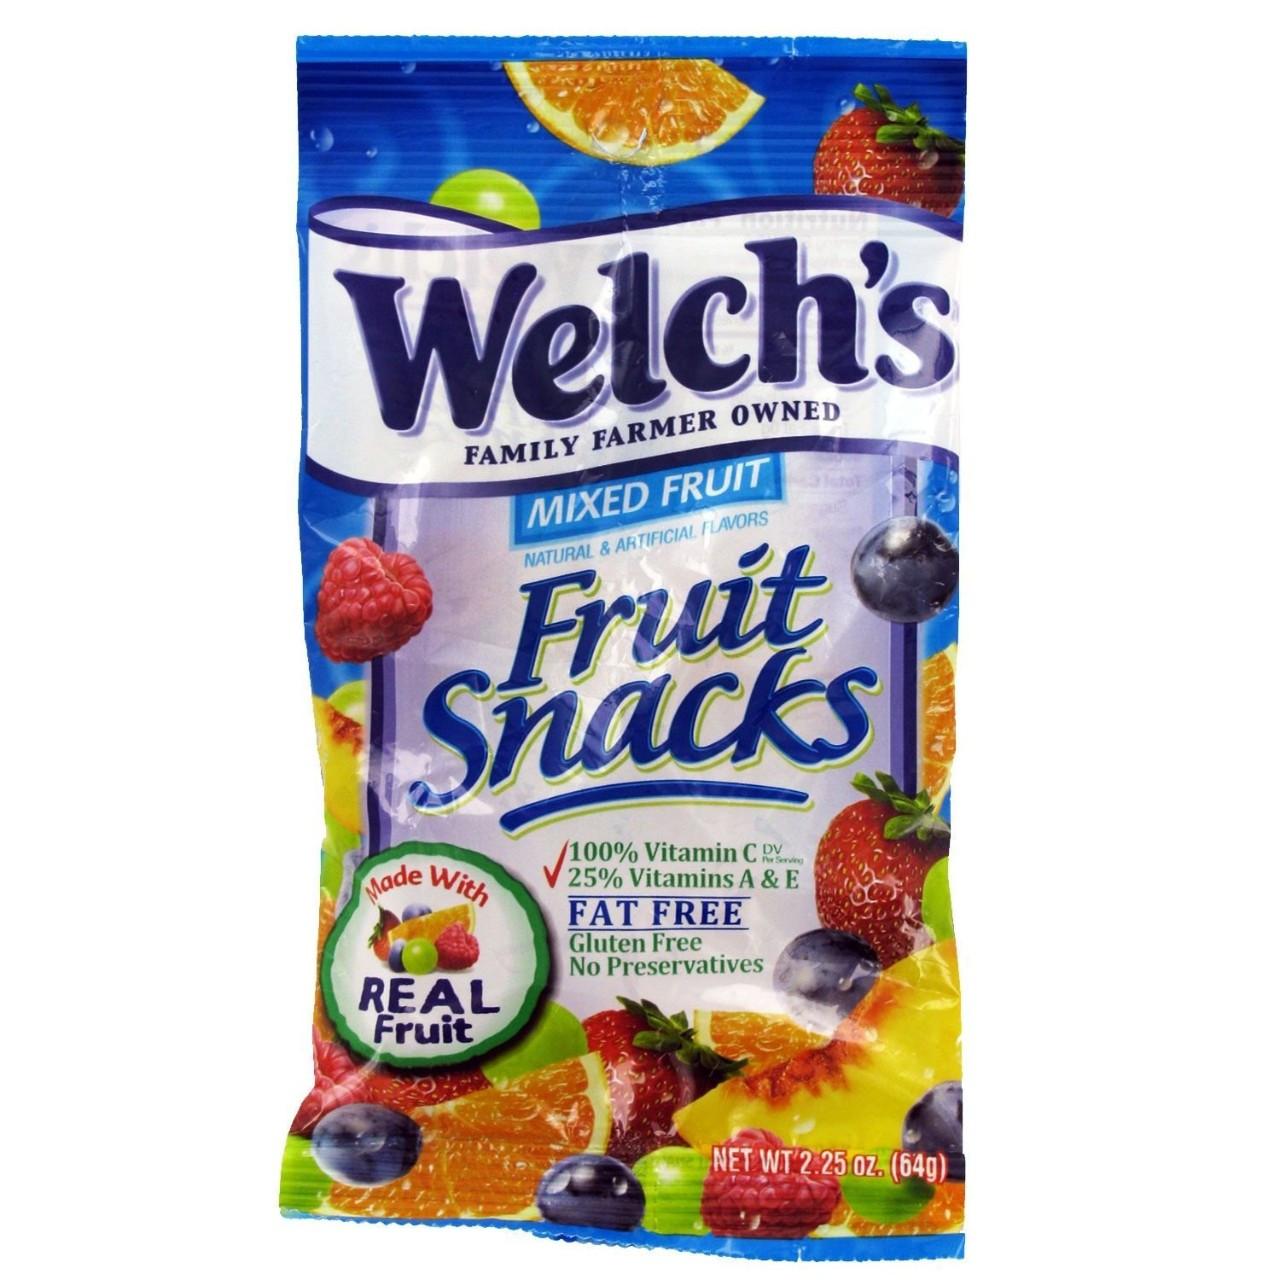 Are Welch'S Fruit Snacks Healthy  Welch s Fruit Snacks lawsuit Fruit Snacks are not healthy